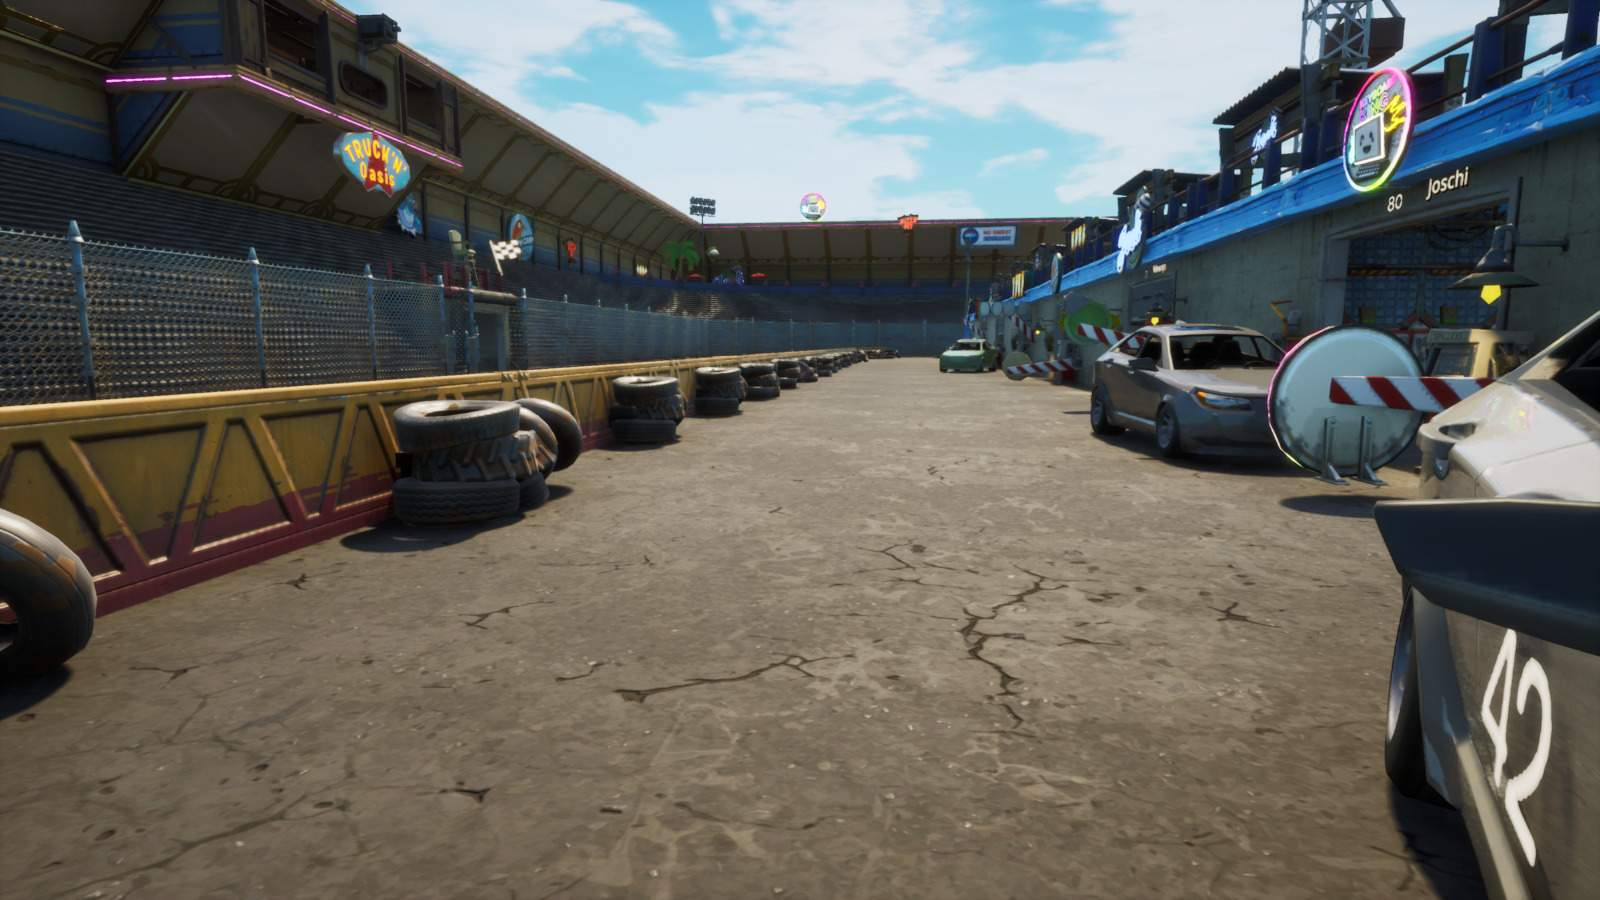 MOTOR SPEEDWAY HIDE AND SEEK